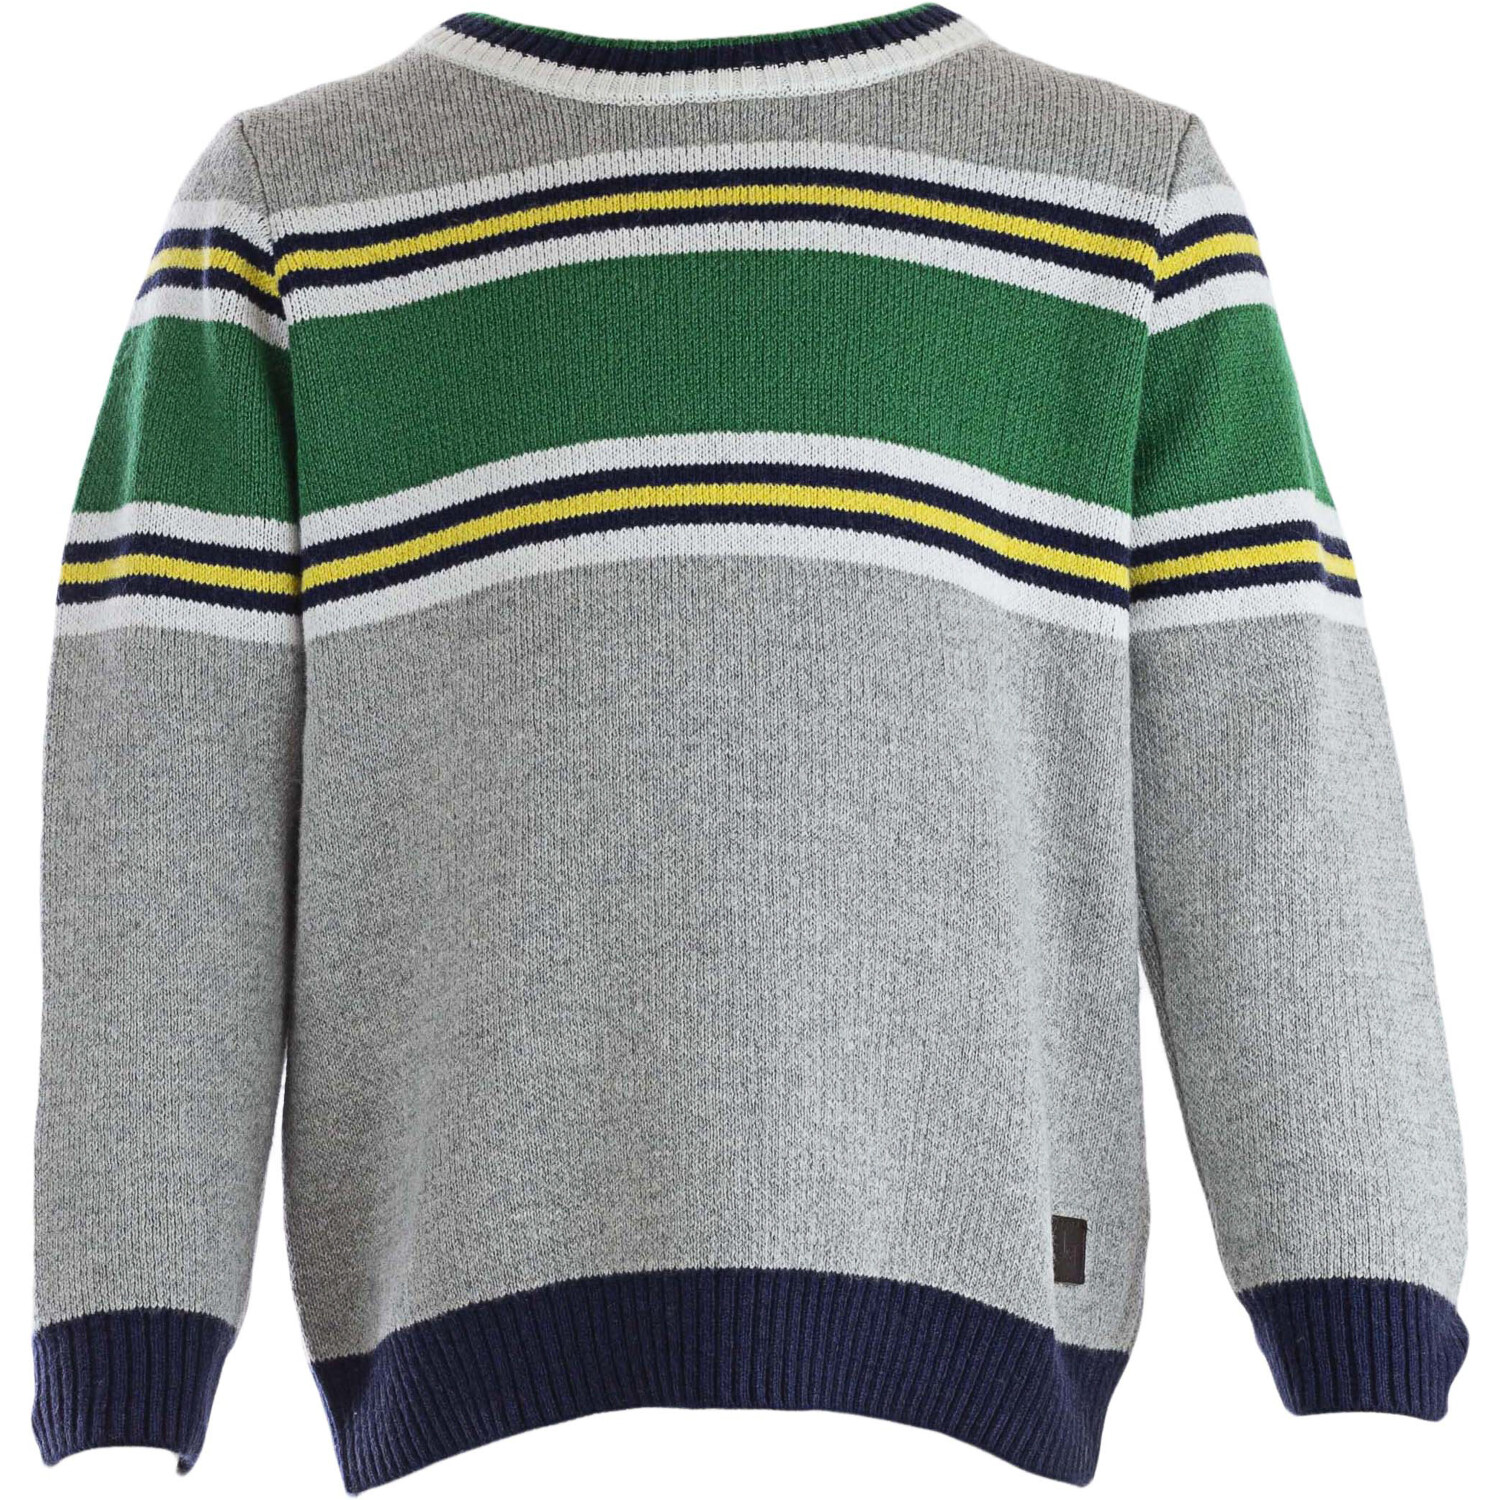 Janie And Jack Grey / Green White Yellow Black Colorblocked Crewneck Sweater - 6-12 Months